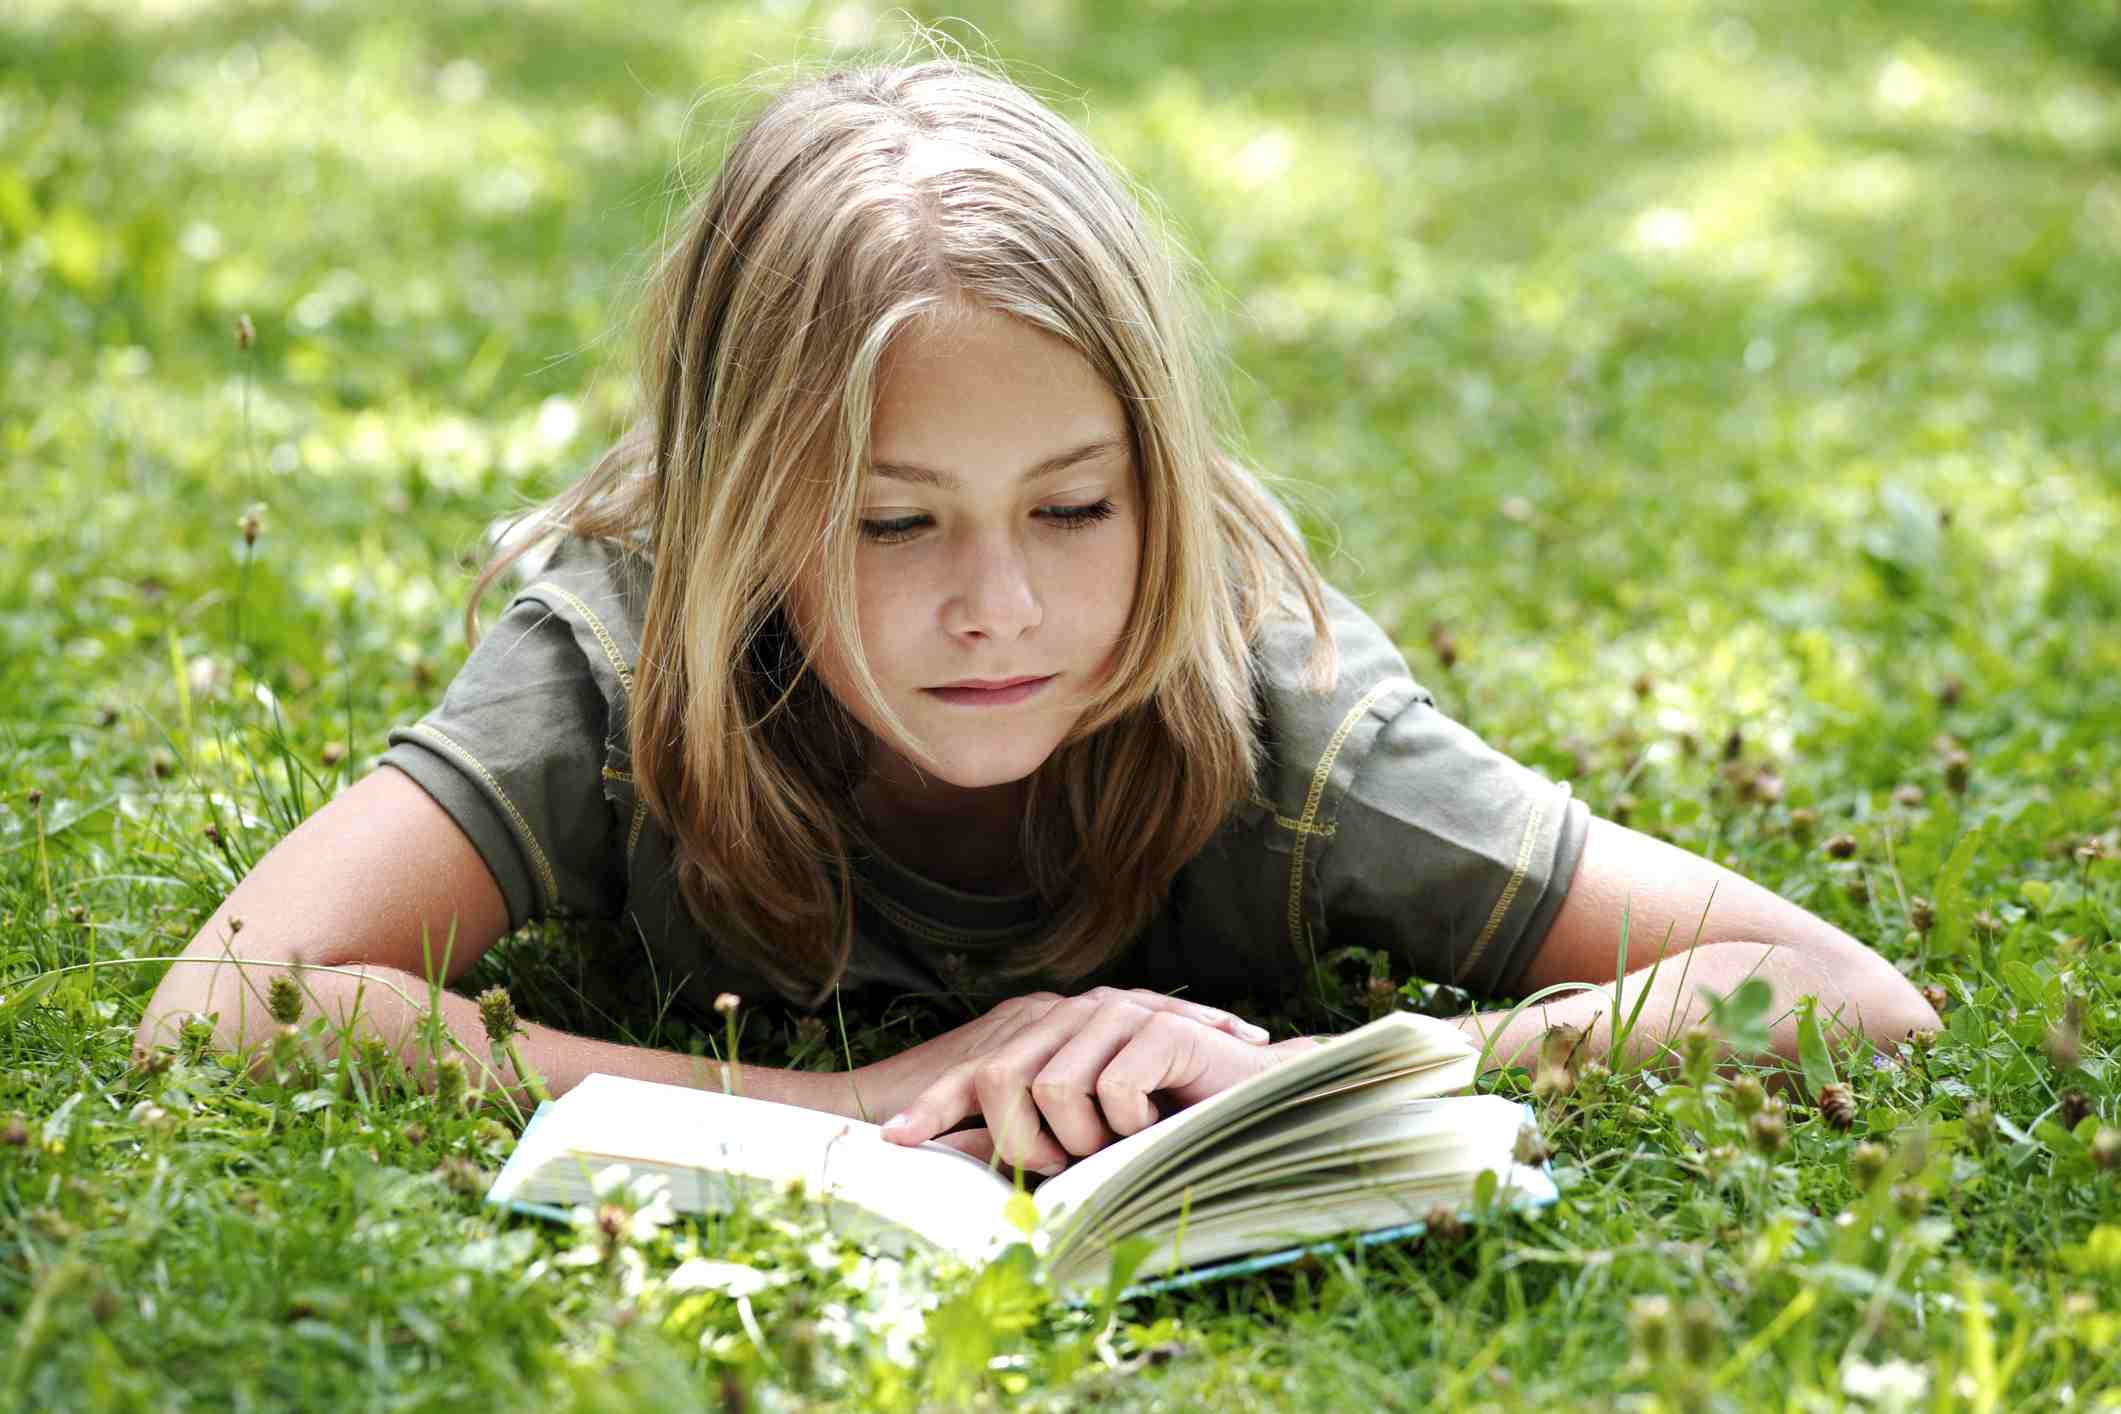 Young girl reading a book in the grass